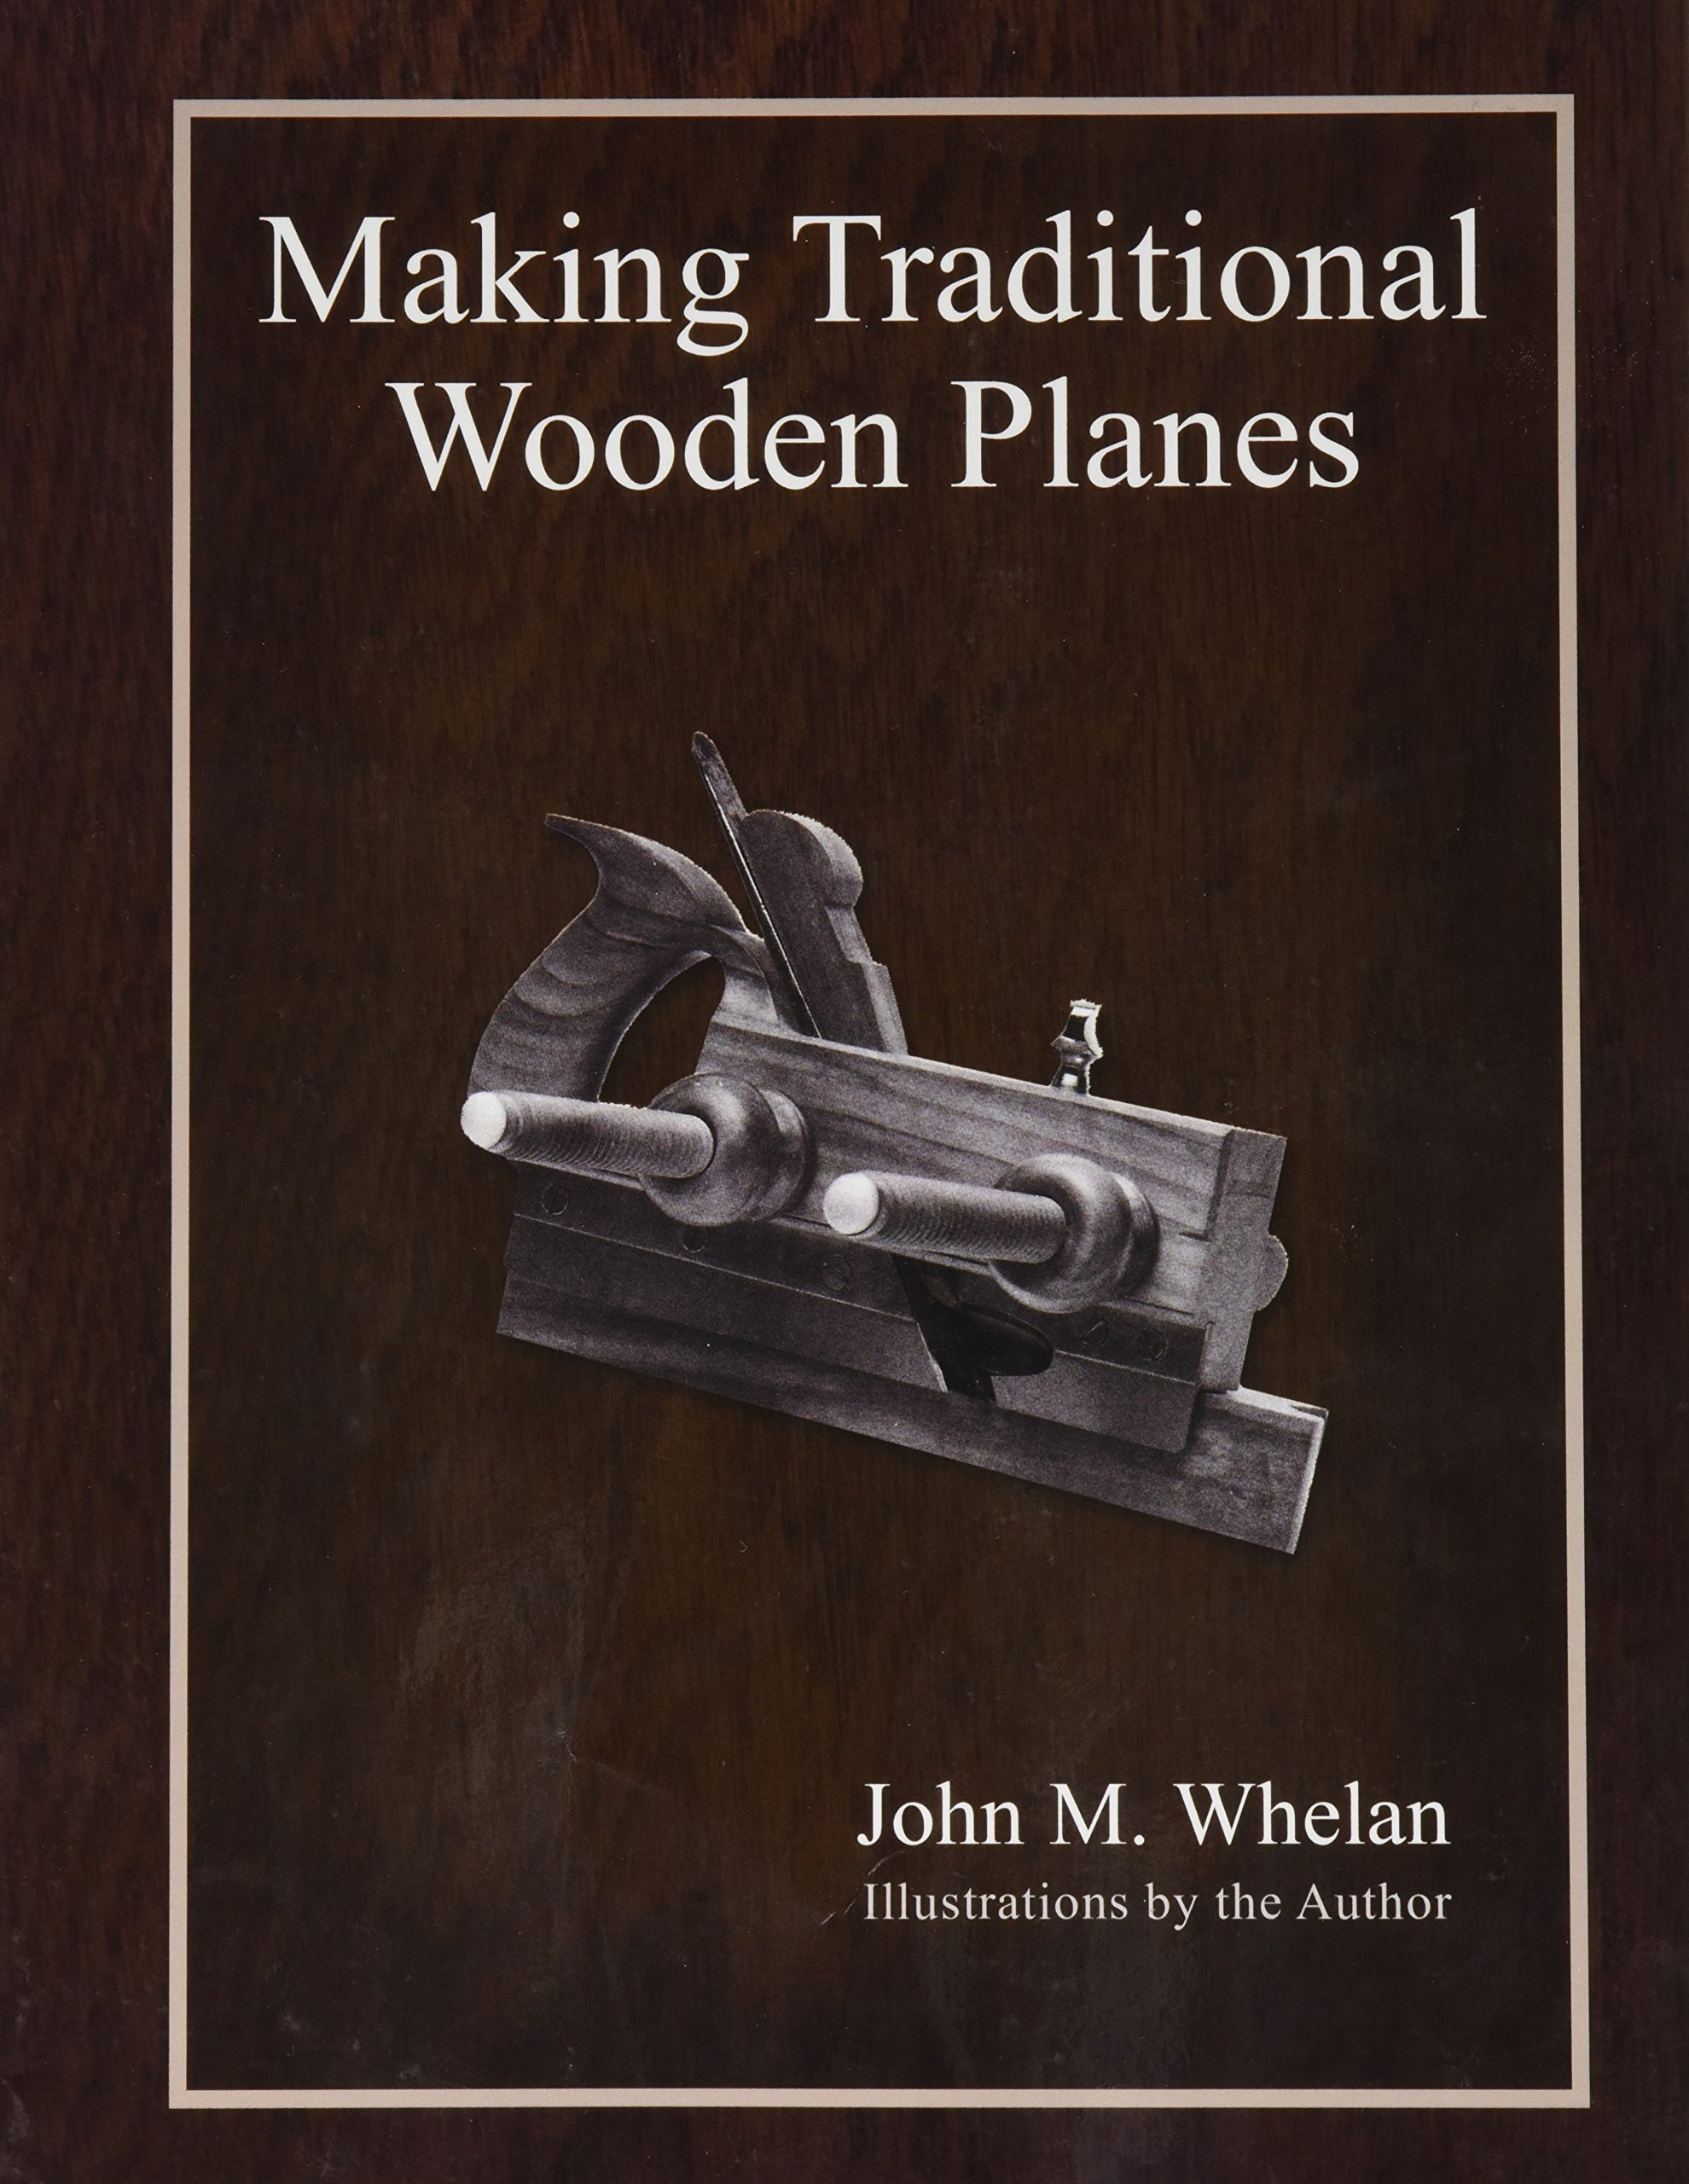 Making Traditional Wooden Planes